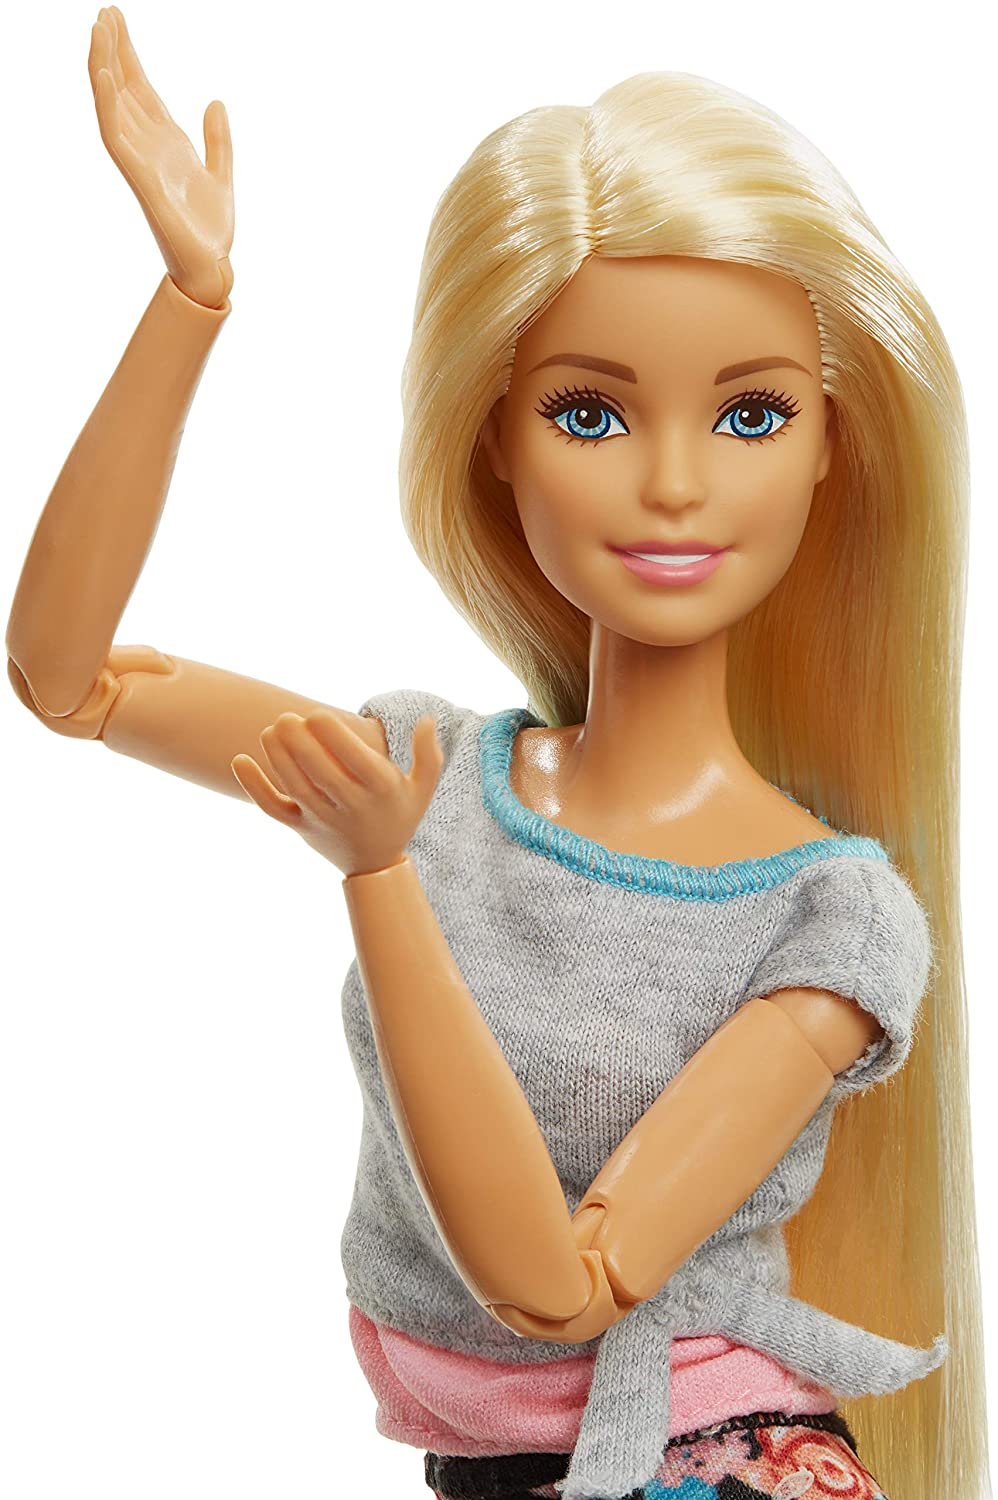 Amazon.es: Barbie Fashionista Made to Move, muñeca articulada rubia con top gris (Mattel FTG81): Juguetes y juegos